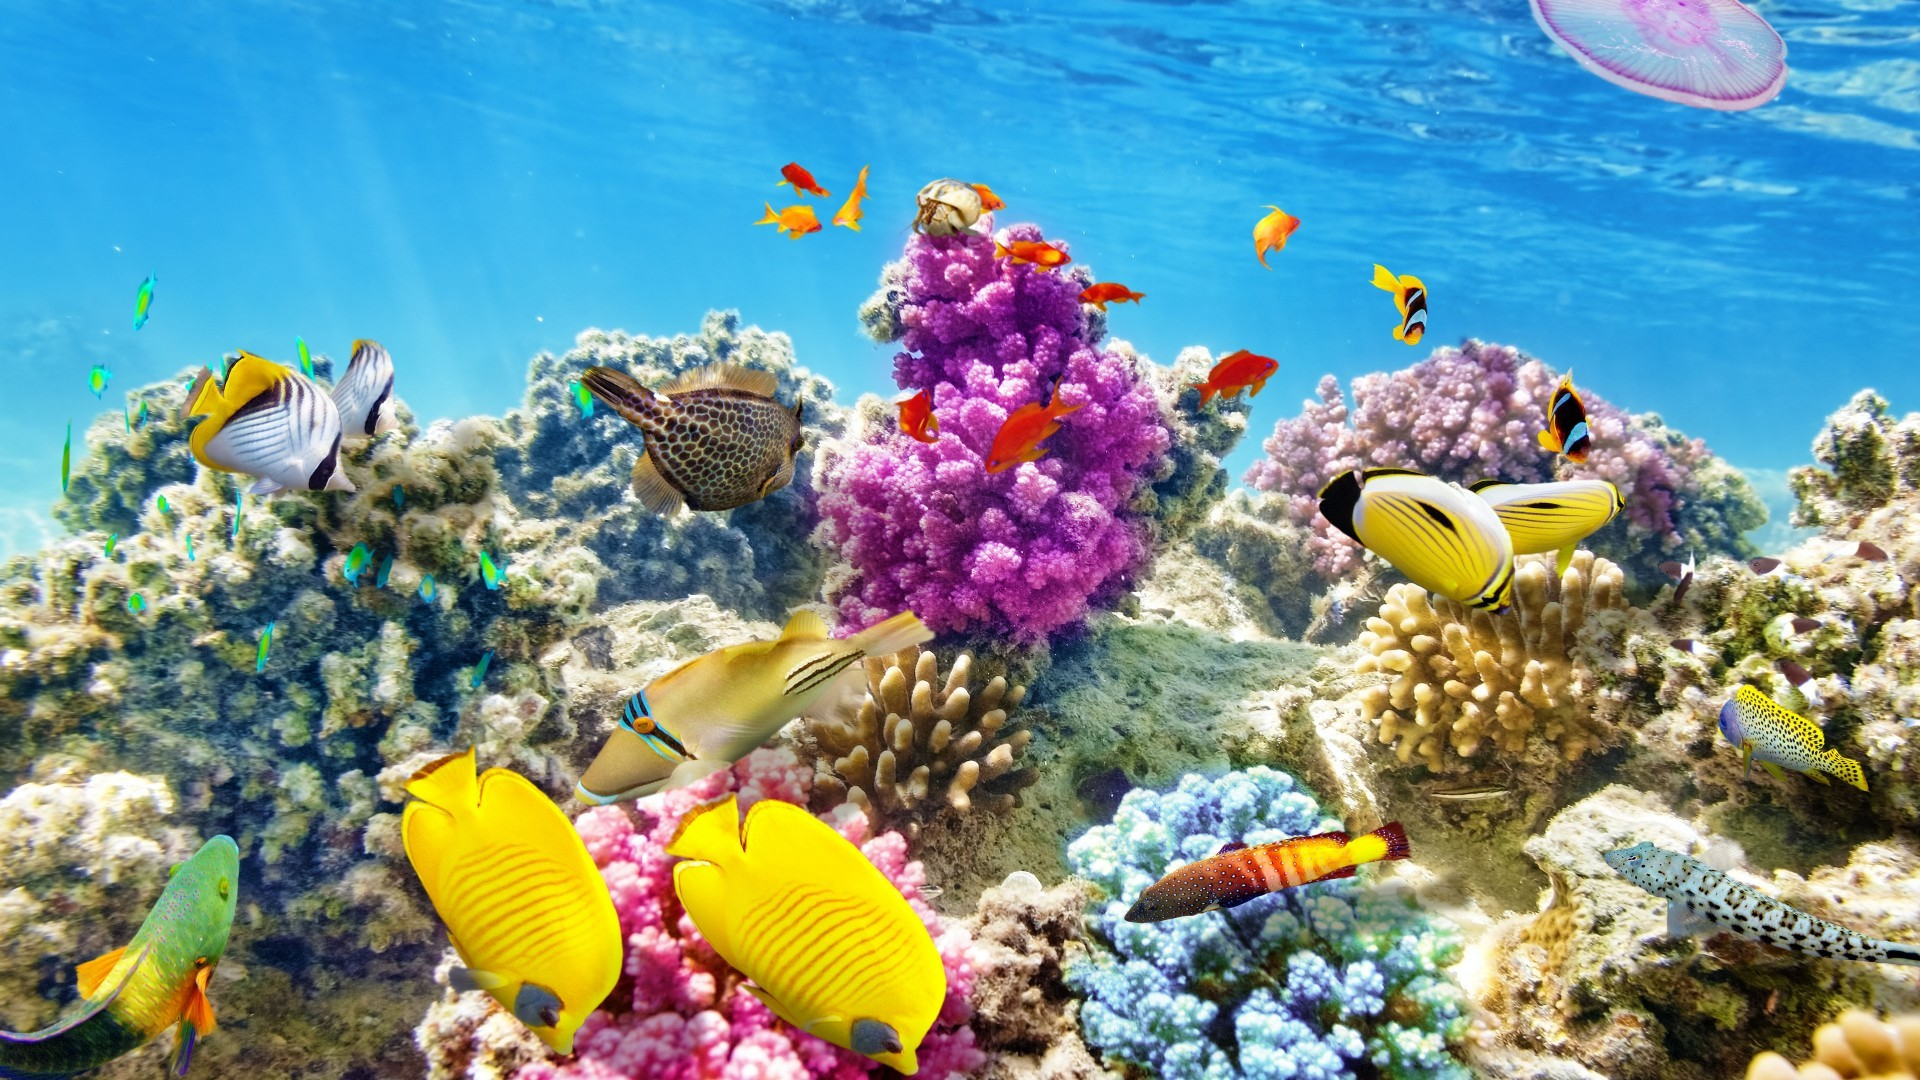 Coral Reef Wallpaper HD (65+ images)